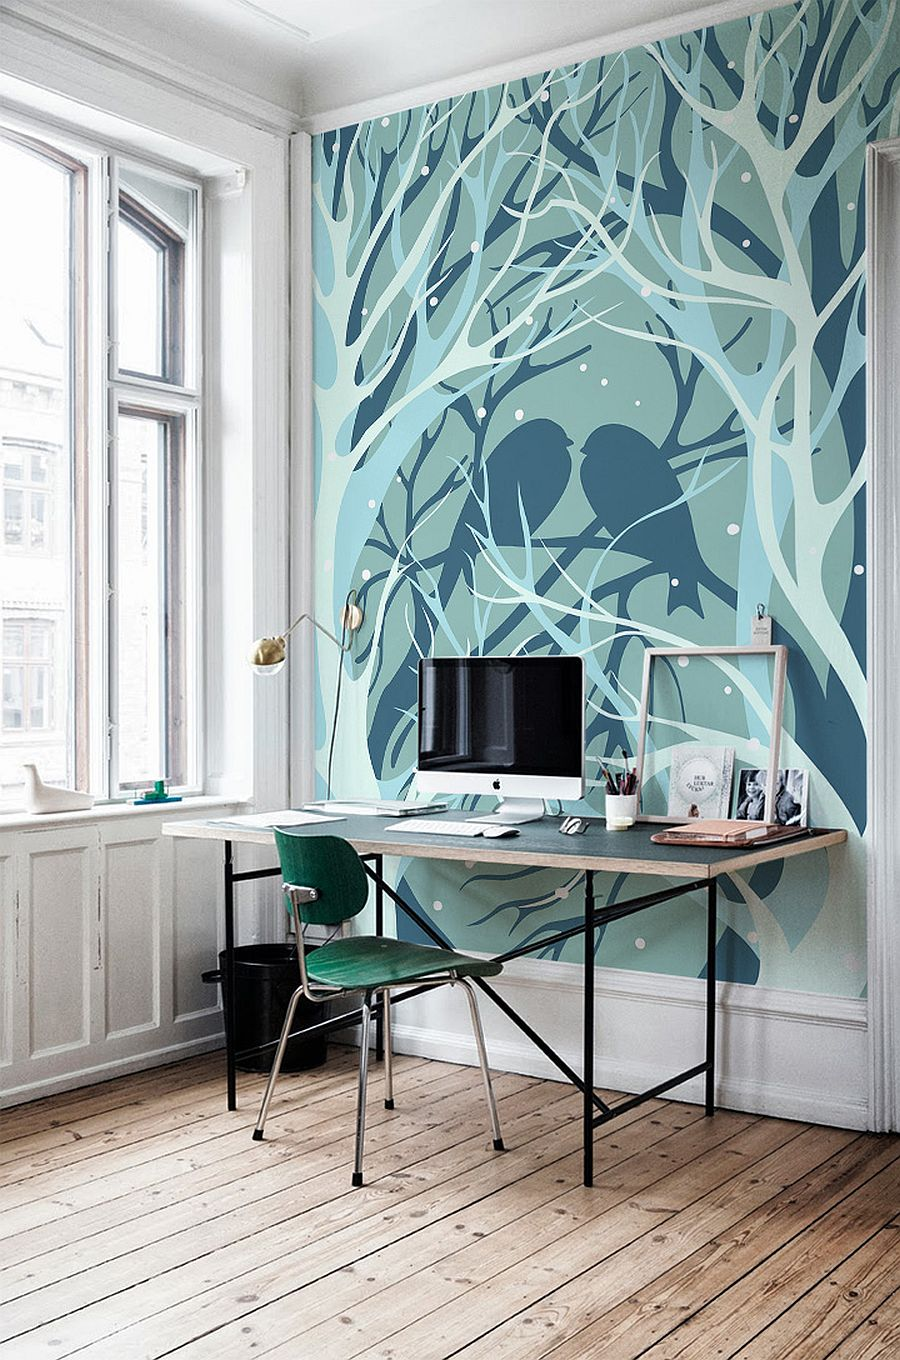 Great 30 Of The Most Incredible Wall Murals Designs You Have Ever Seen (25) Part 18